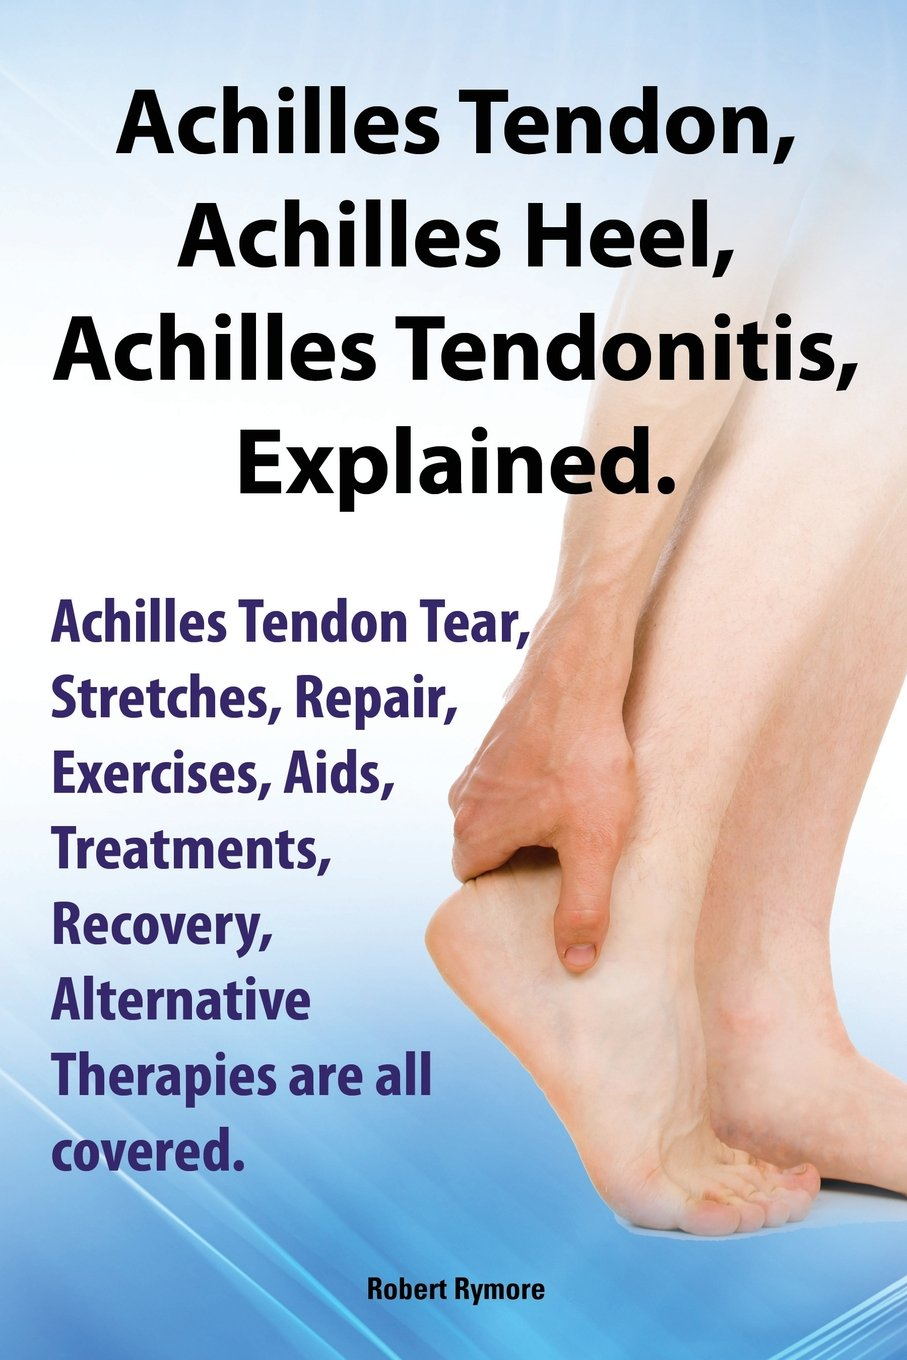 Achilles tendon rupture physical therapy - Achilles Heel Achilles Tendon Achilles Tendonitis Explained Achilles Tendon Tear Stretches Repair Exercises Aids Treatments Recovery